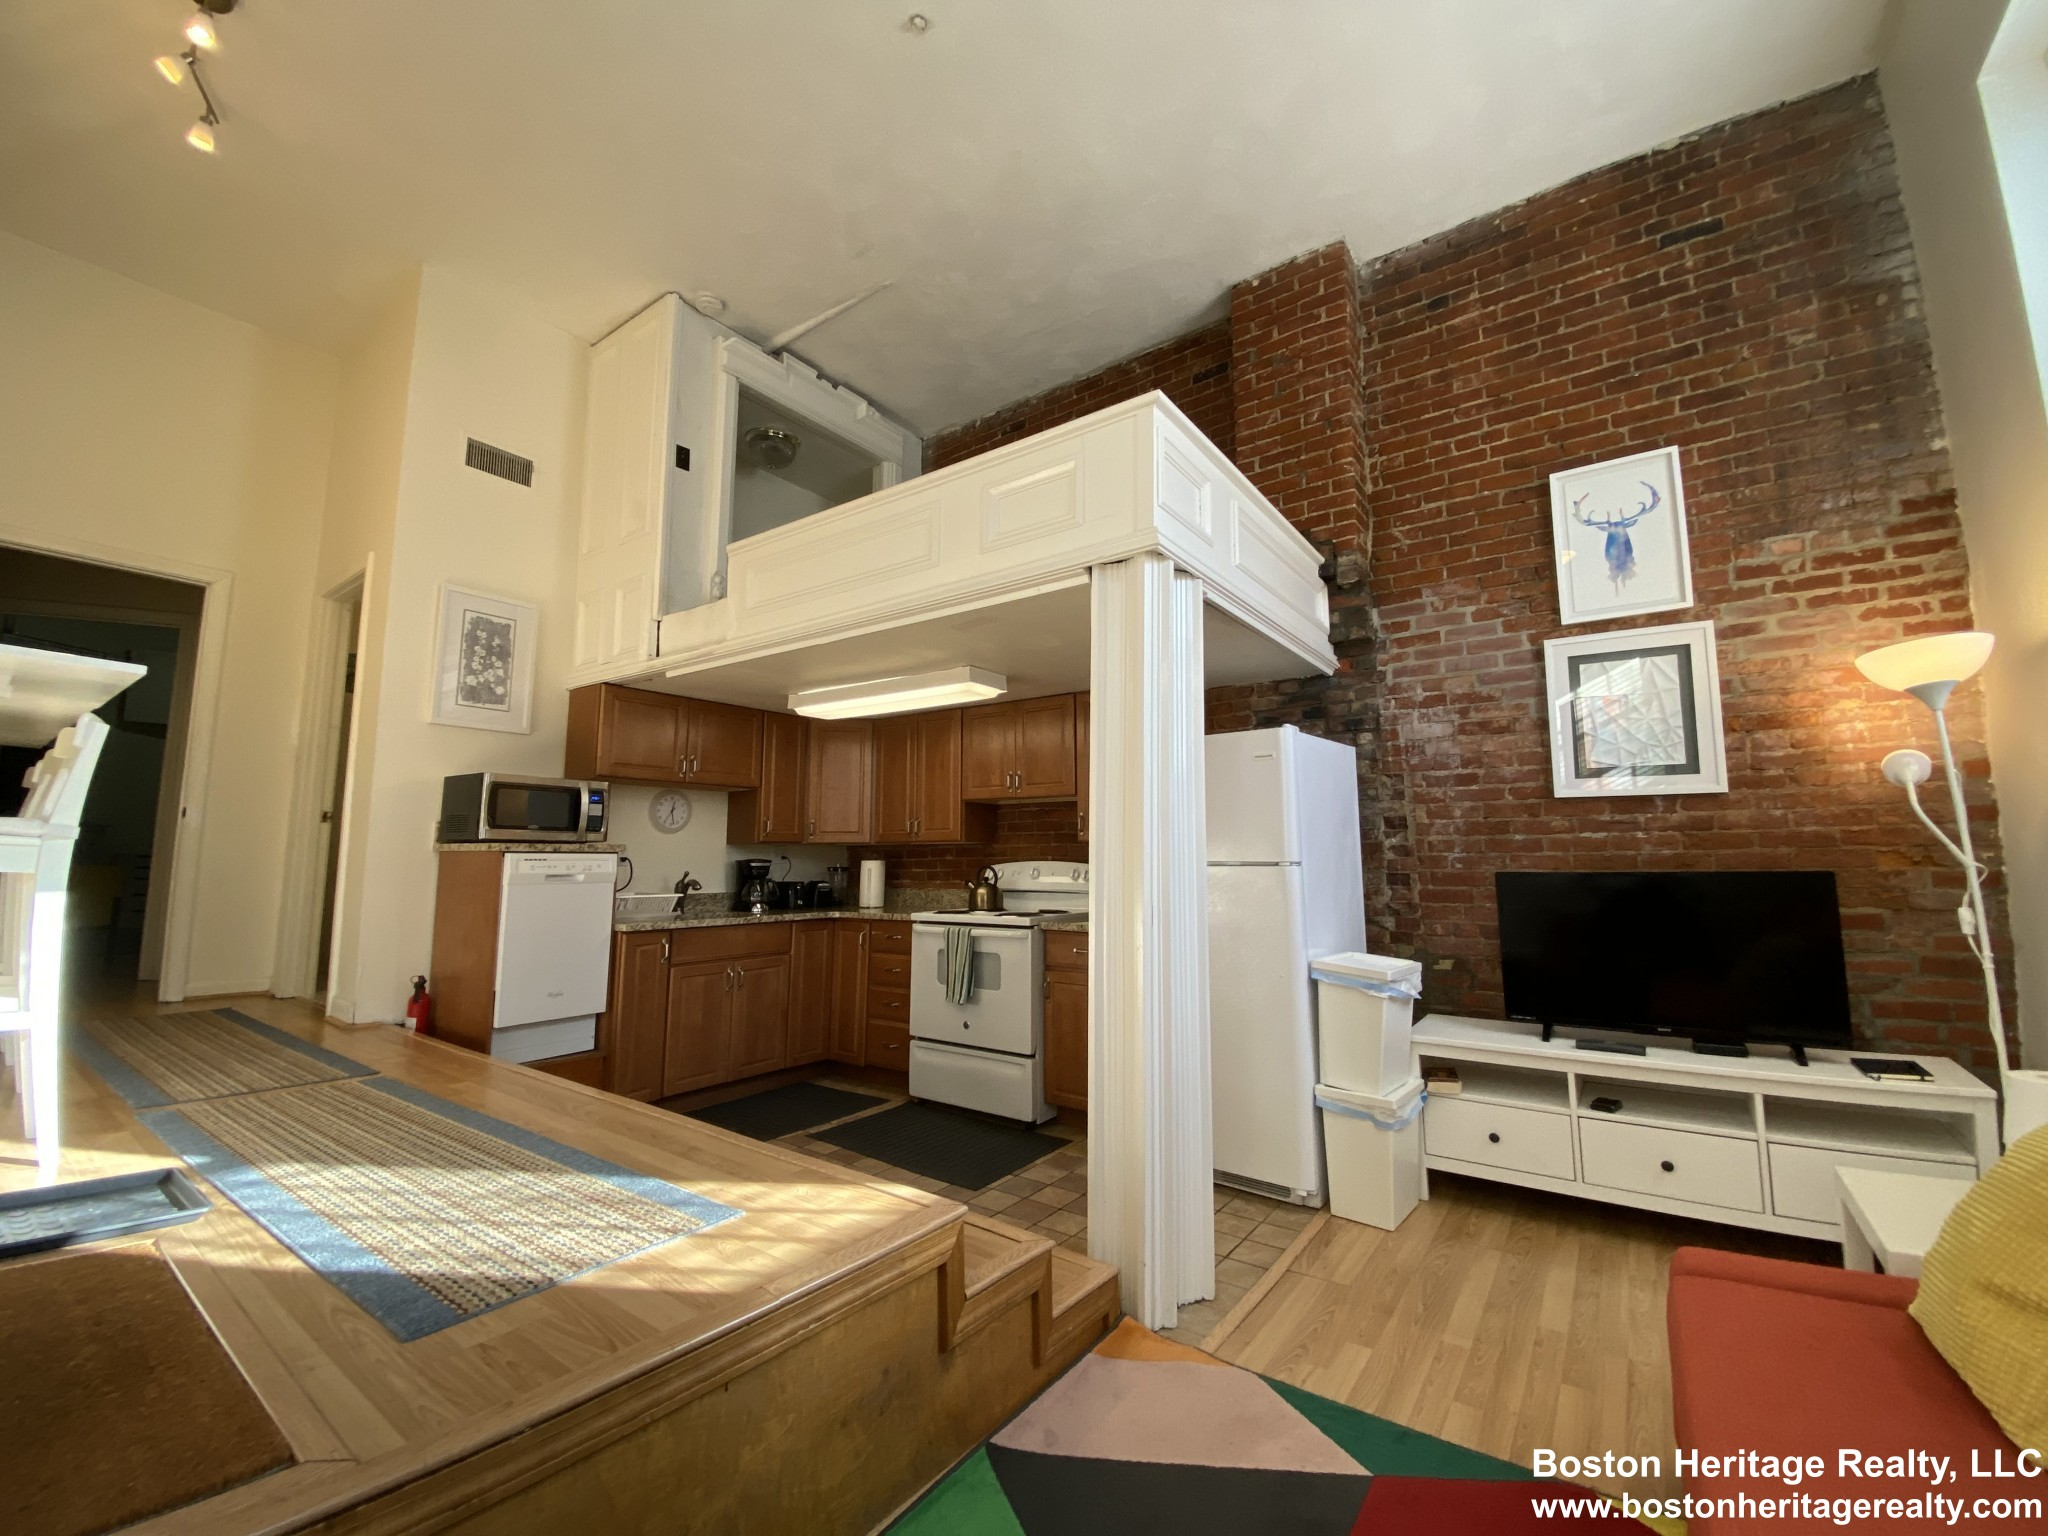 2 Beds, 1 Bath apartment in Boston, South End for $2,150